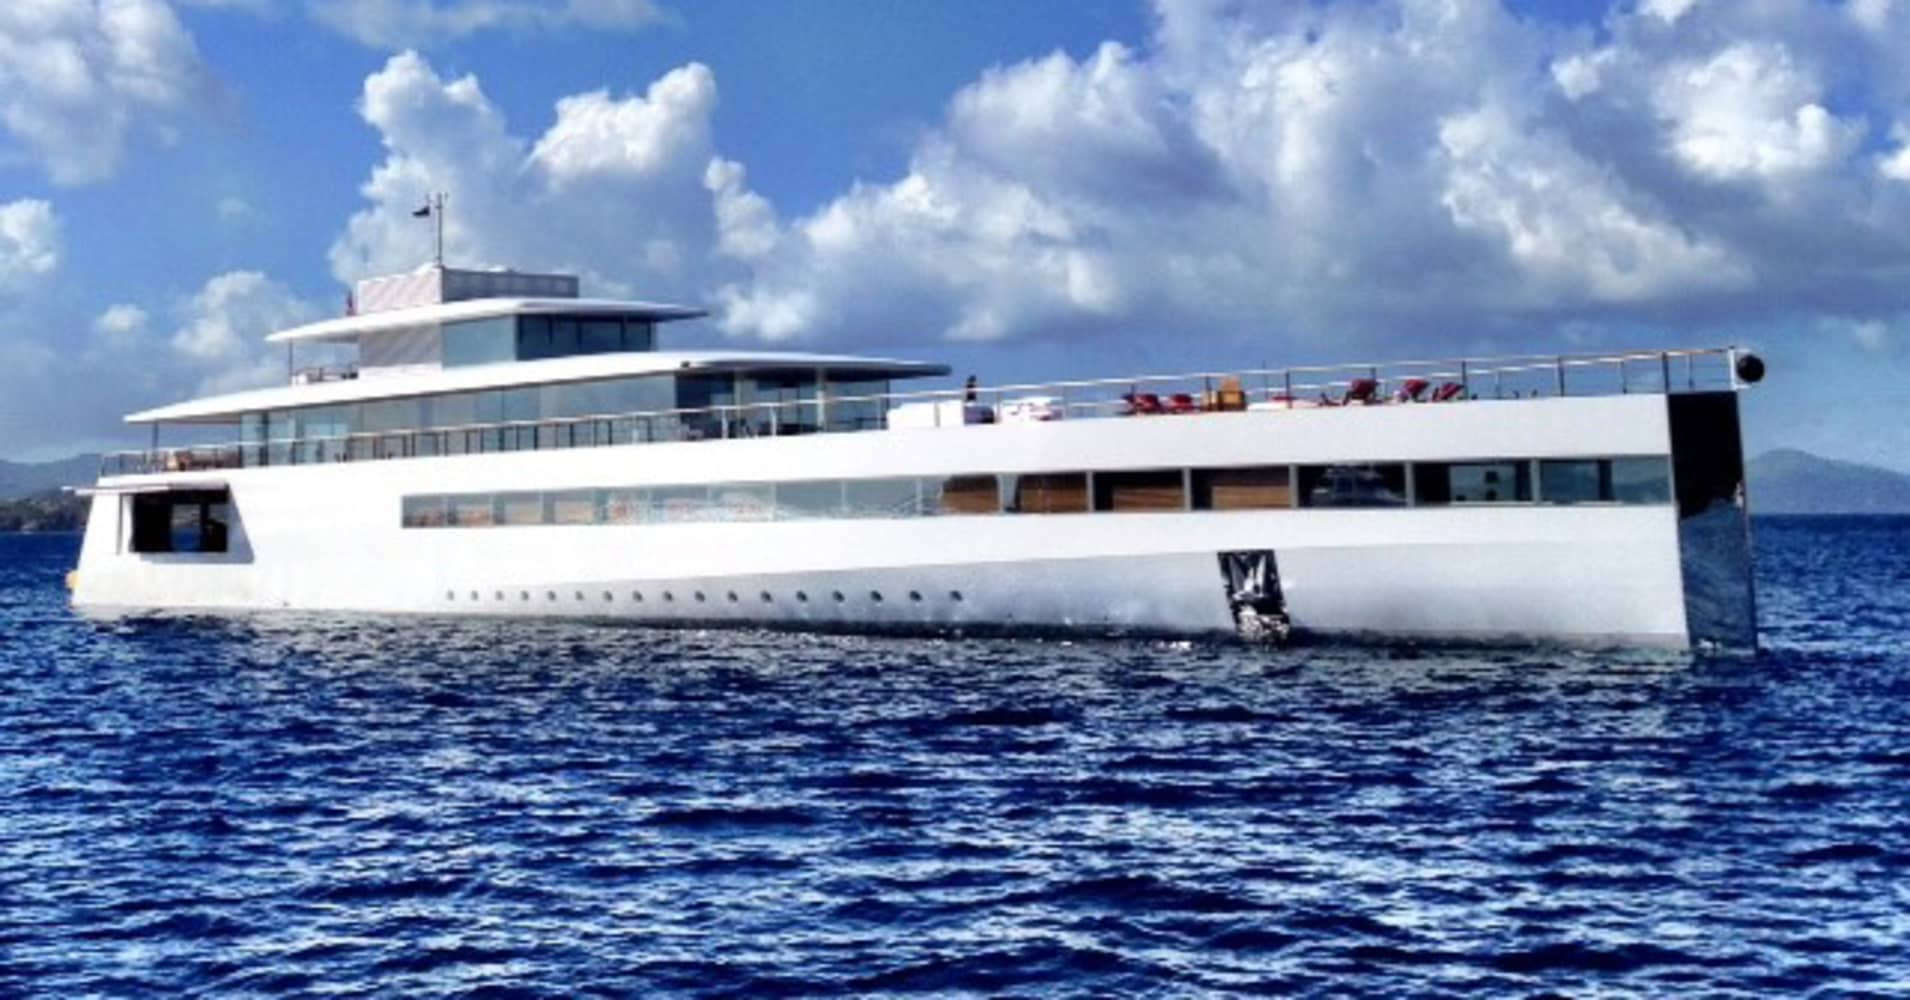 Steve Jobs' 'iYacht' revealed in new pics